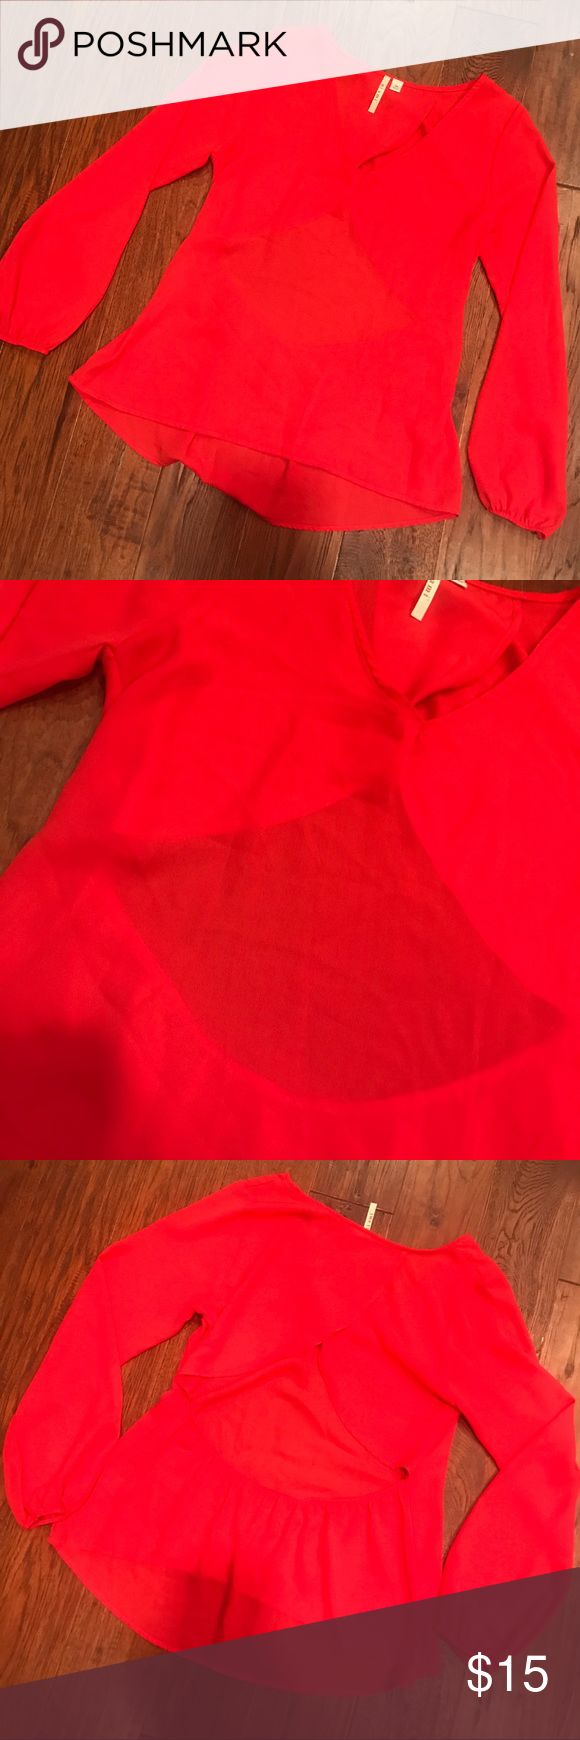 NWOT Coral Blouse with Open Back Cute coral colored blouse that has an open v in the back. Brand new! miami Tops Blouses